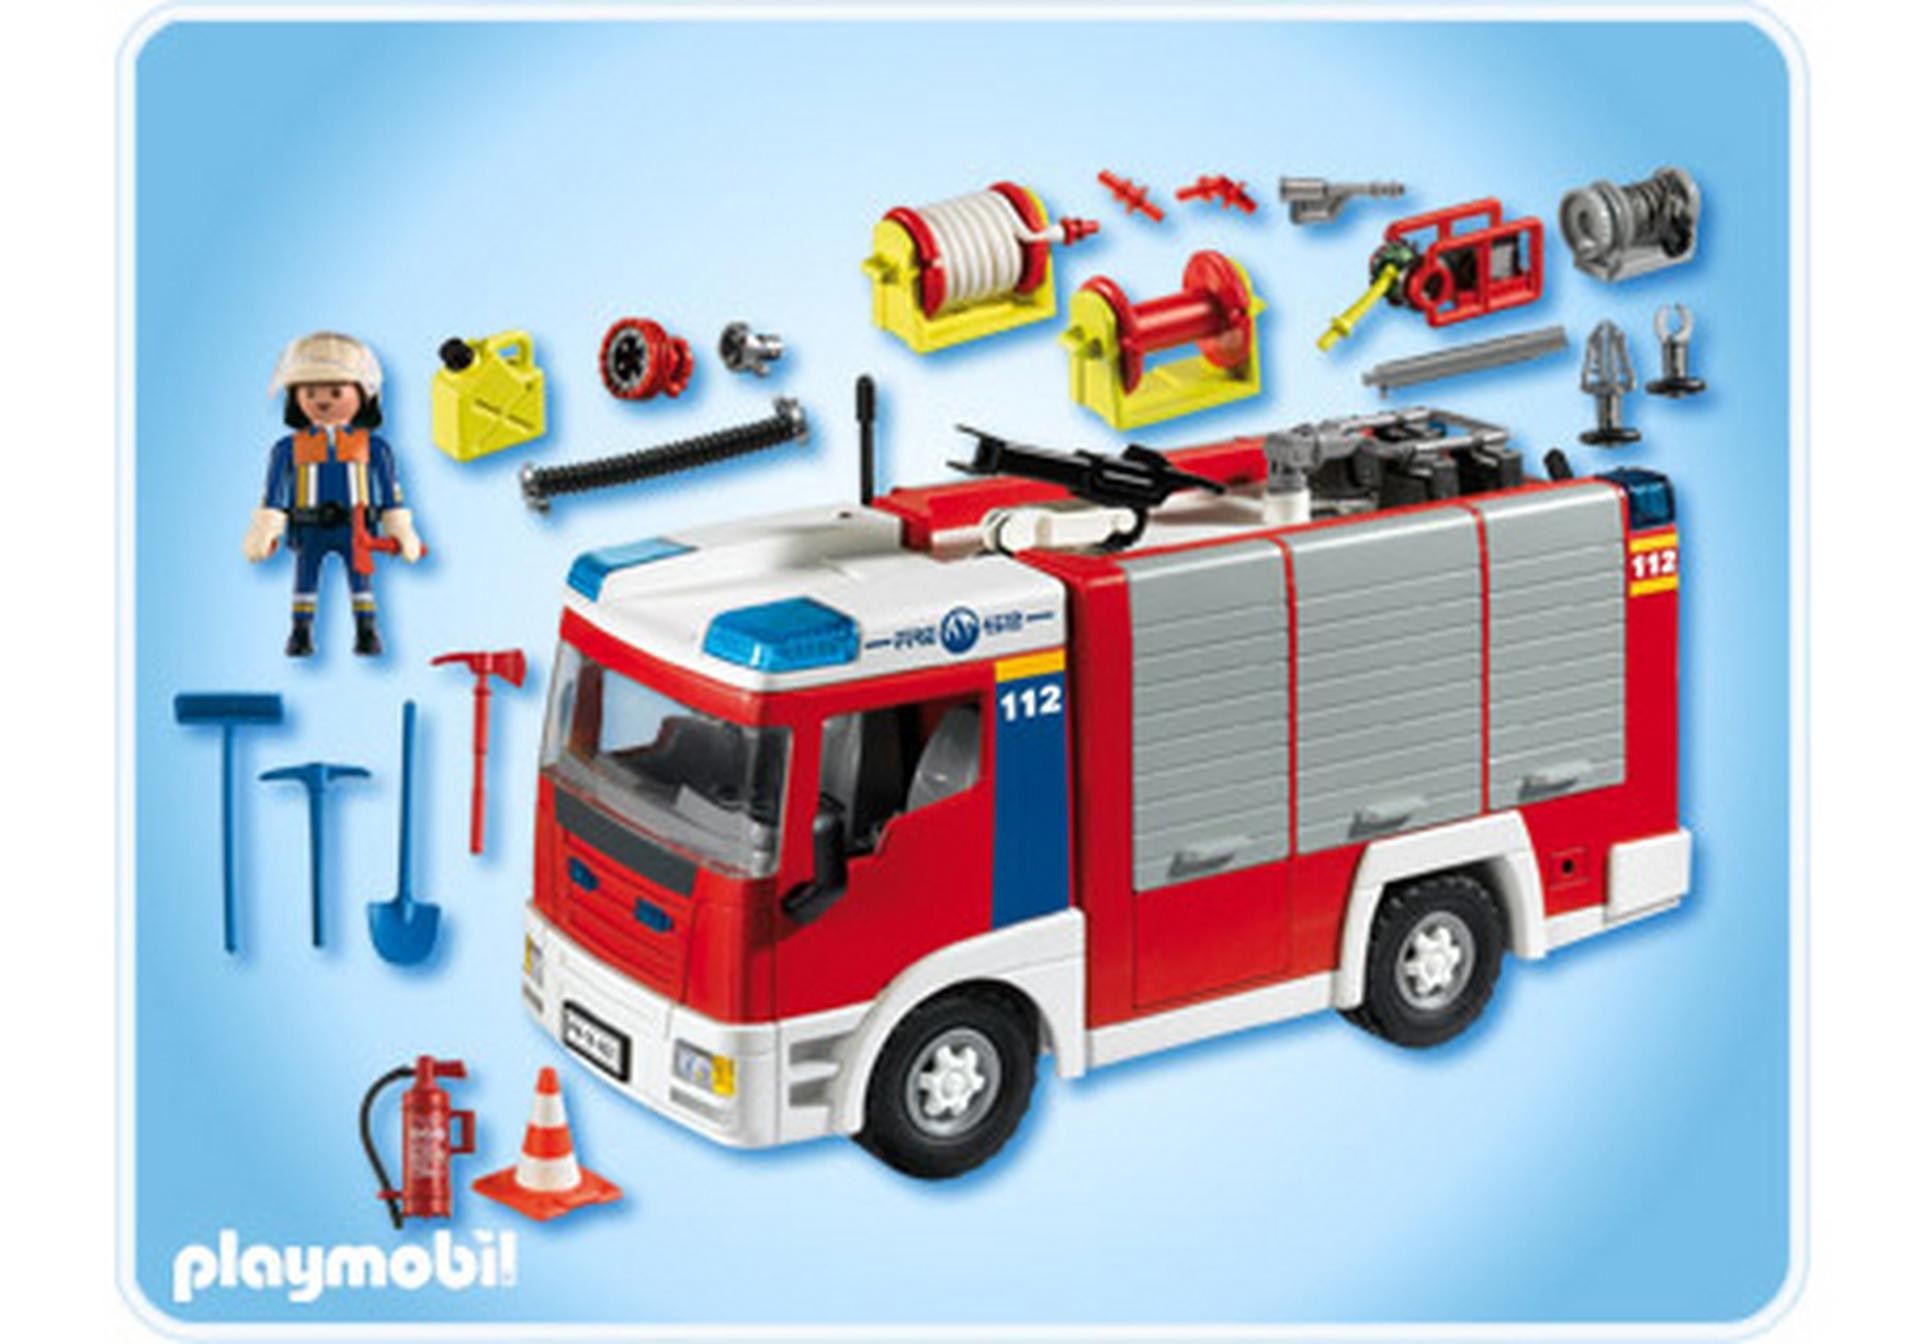 Fourgon d intervention de pompier 4821 a playmobil france - Playmobil pompiers ...